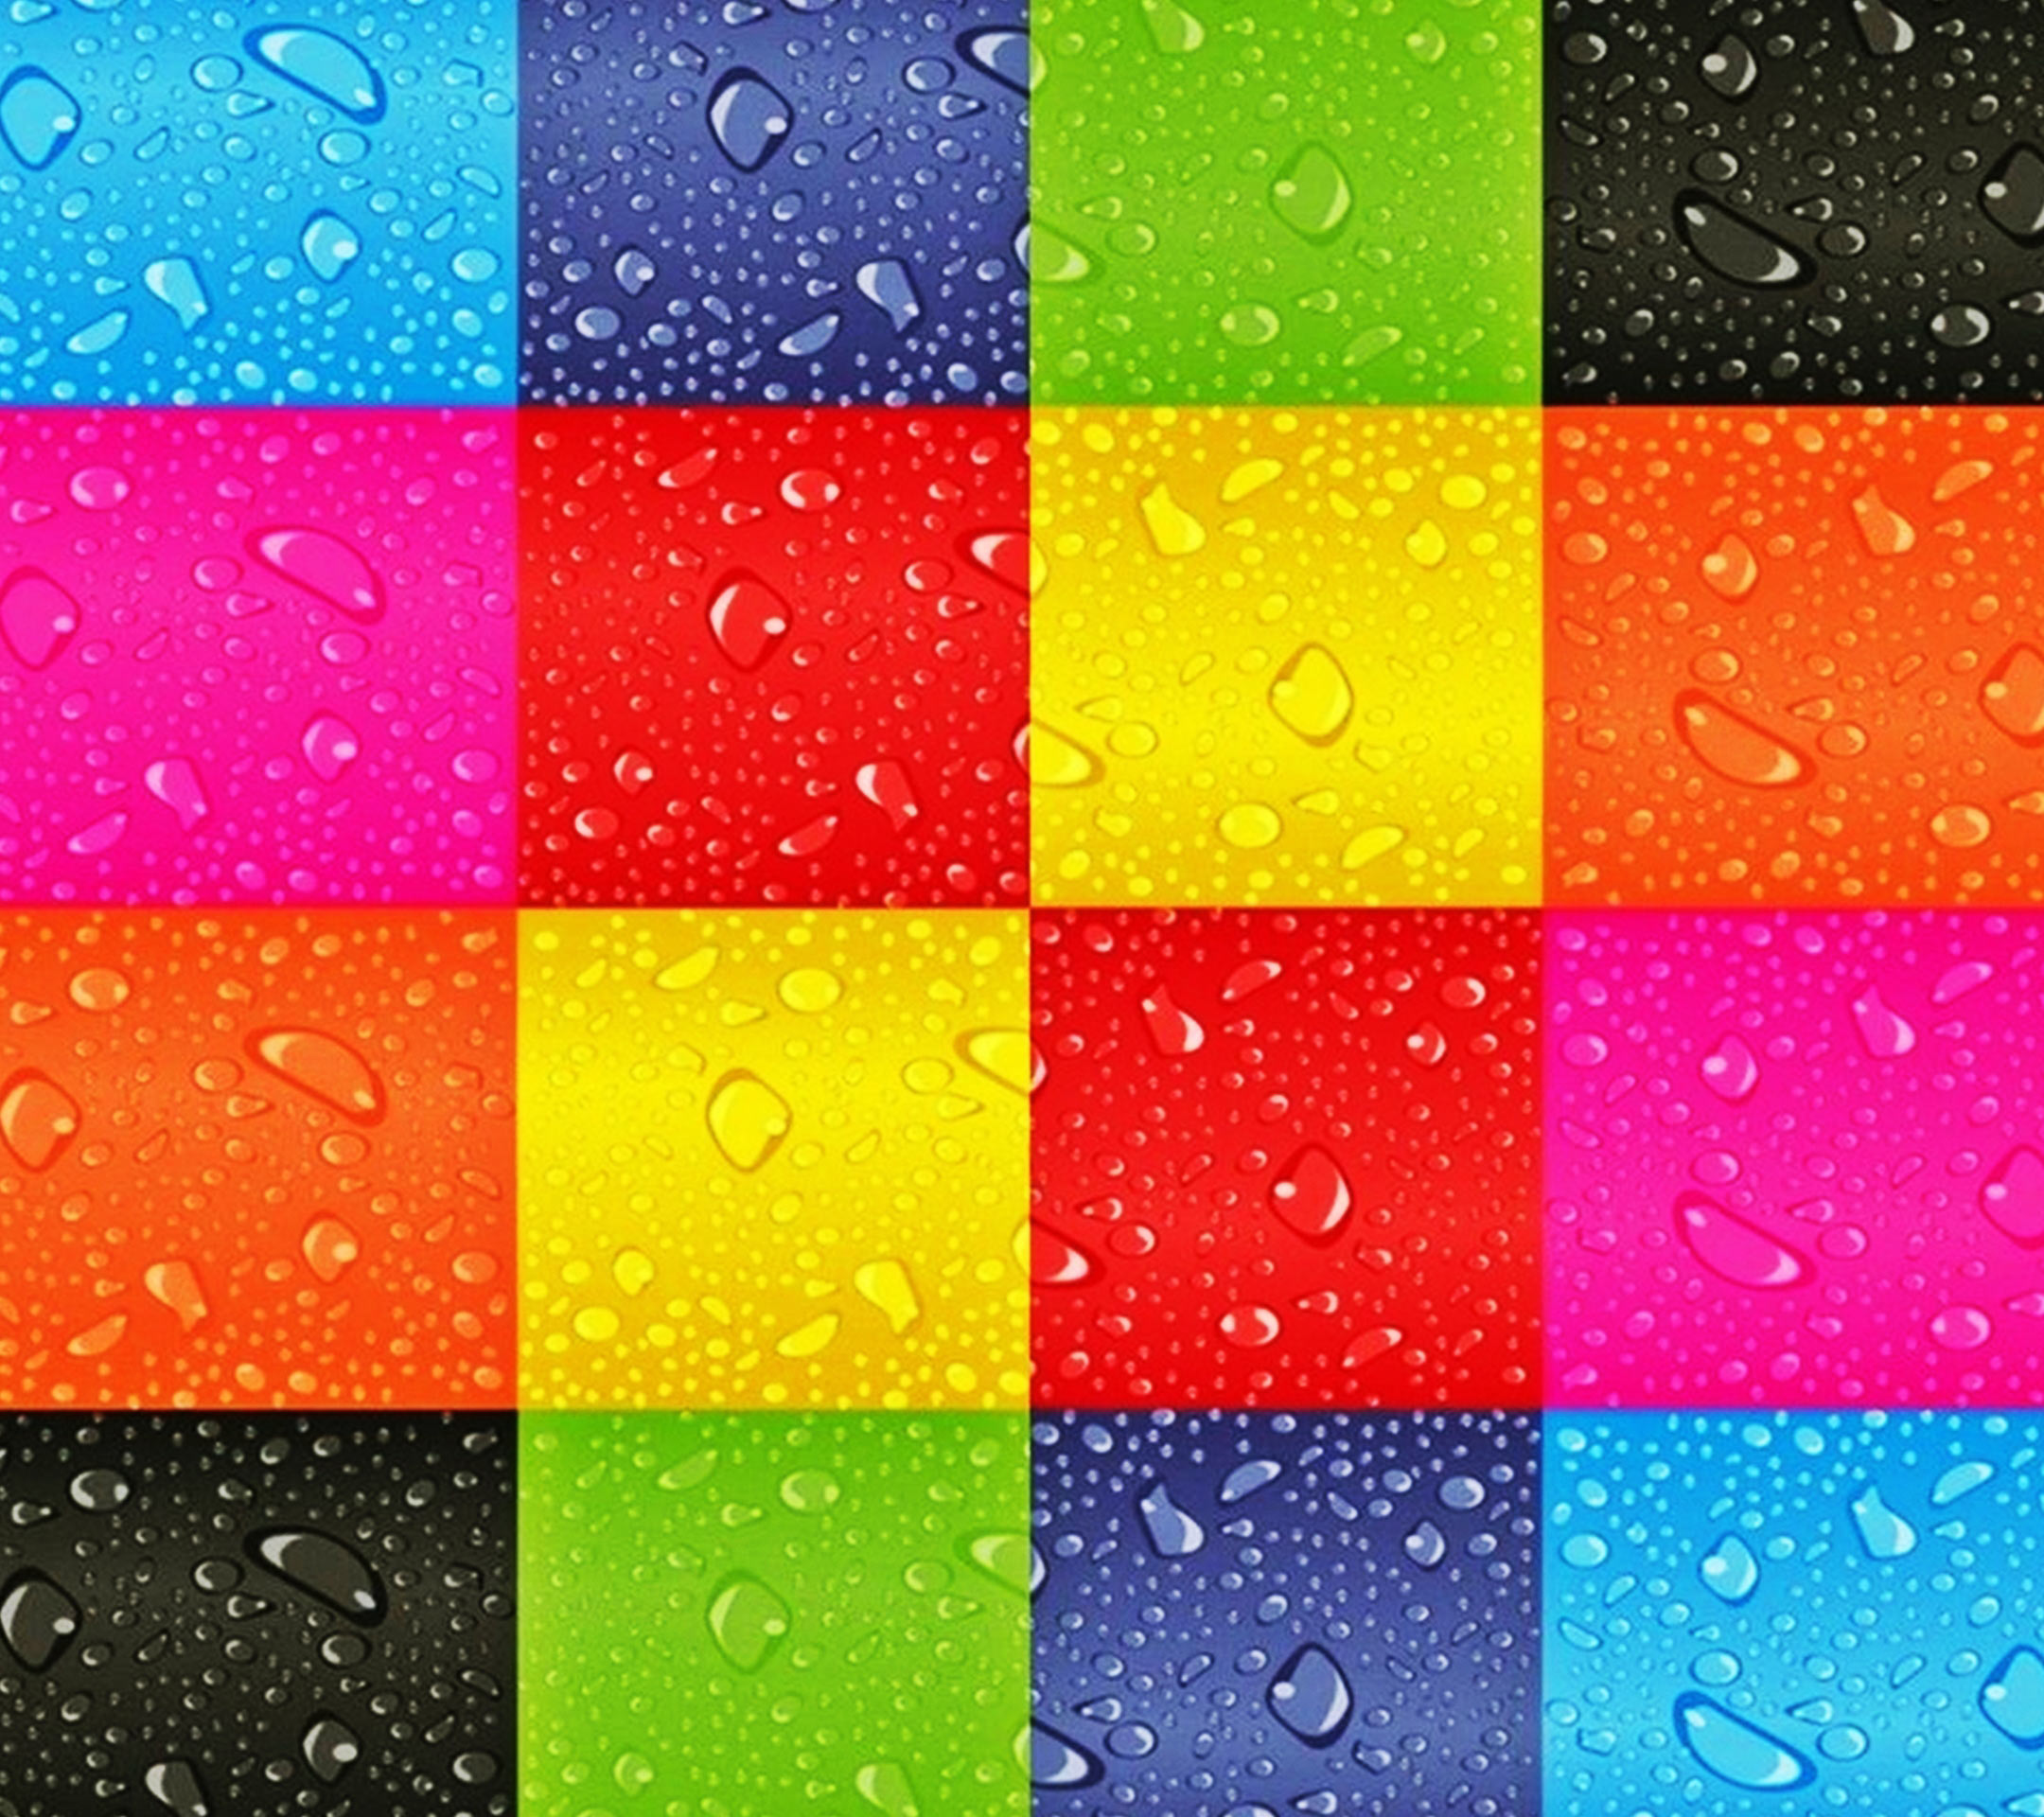 Holi Special 25 Colourful Homescreen Wallpapers For Your Phone